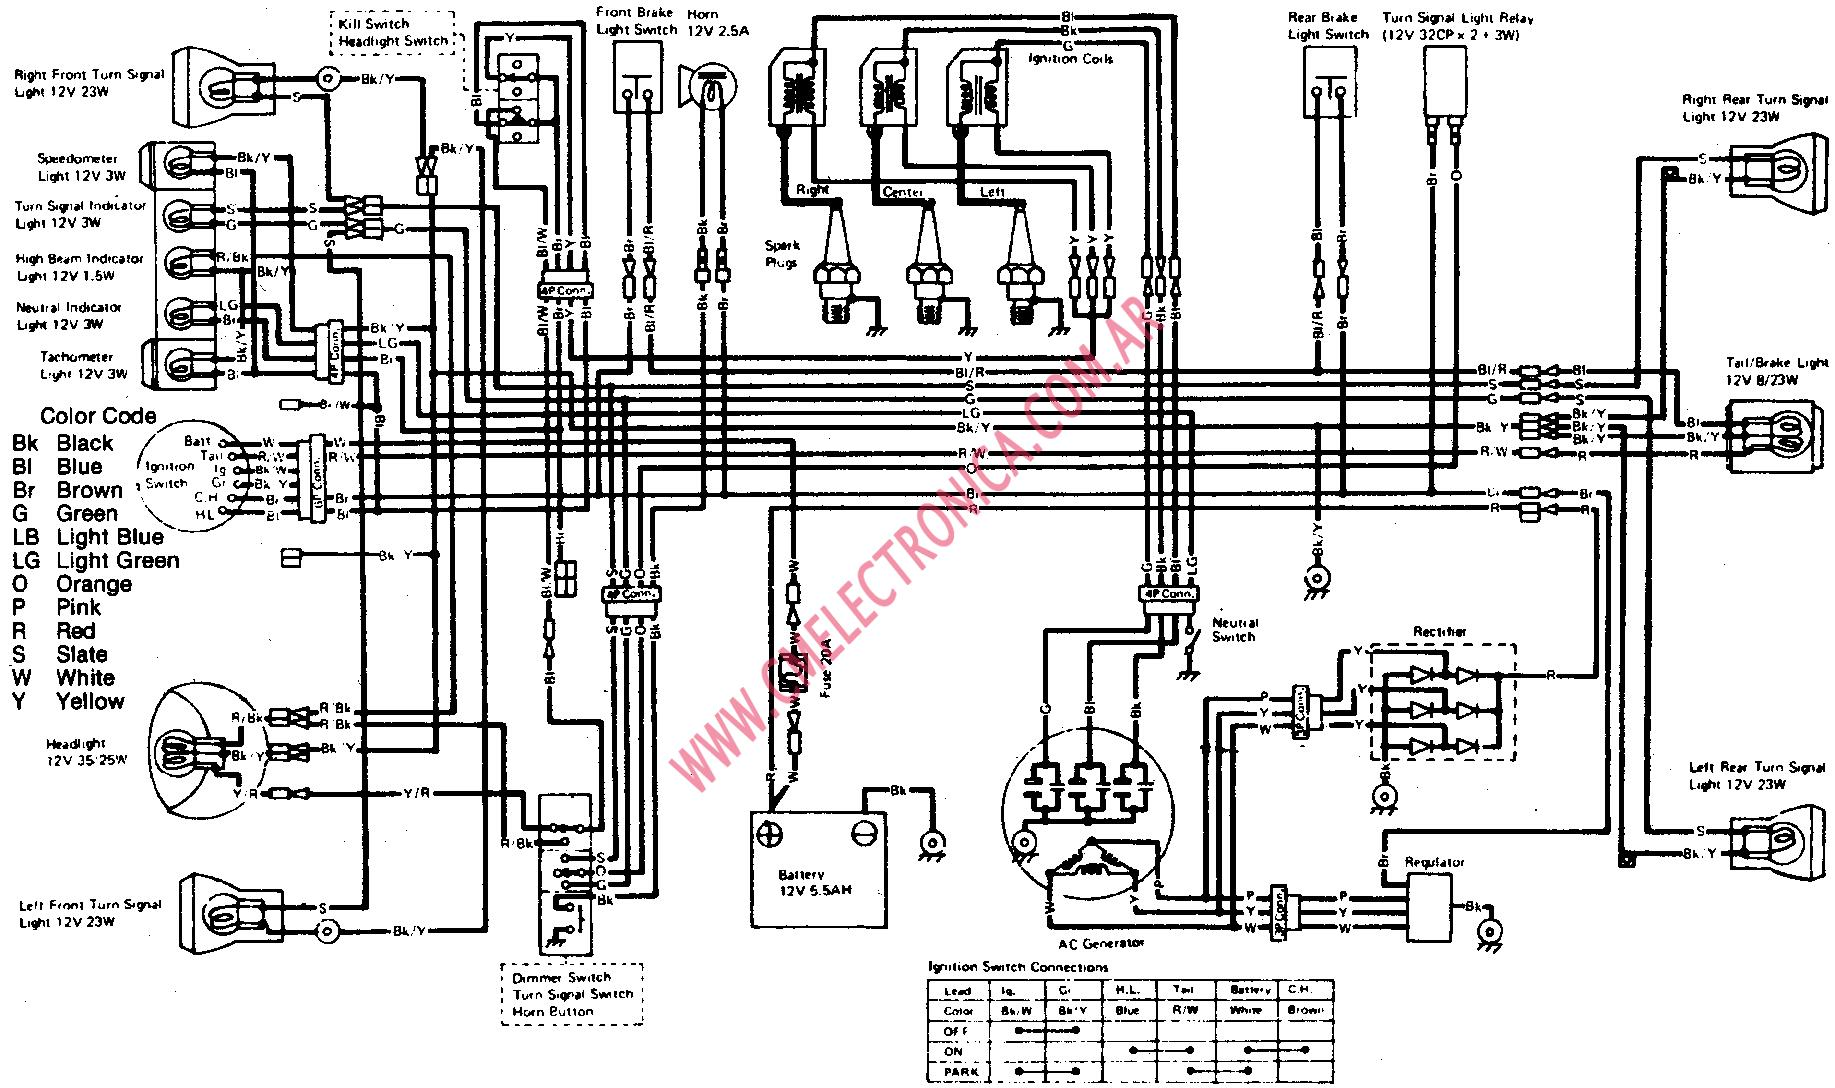 DY_4939] Kawasaki Bayou 220 Wiring Harness Free Download Diagram Download  Diagram